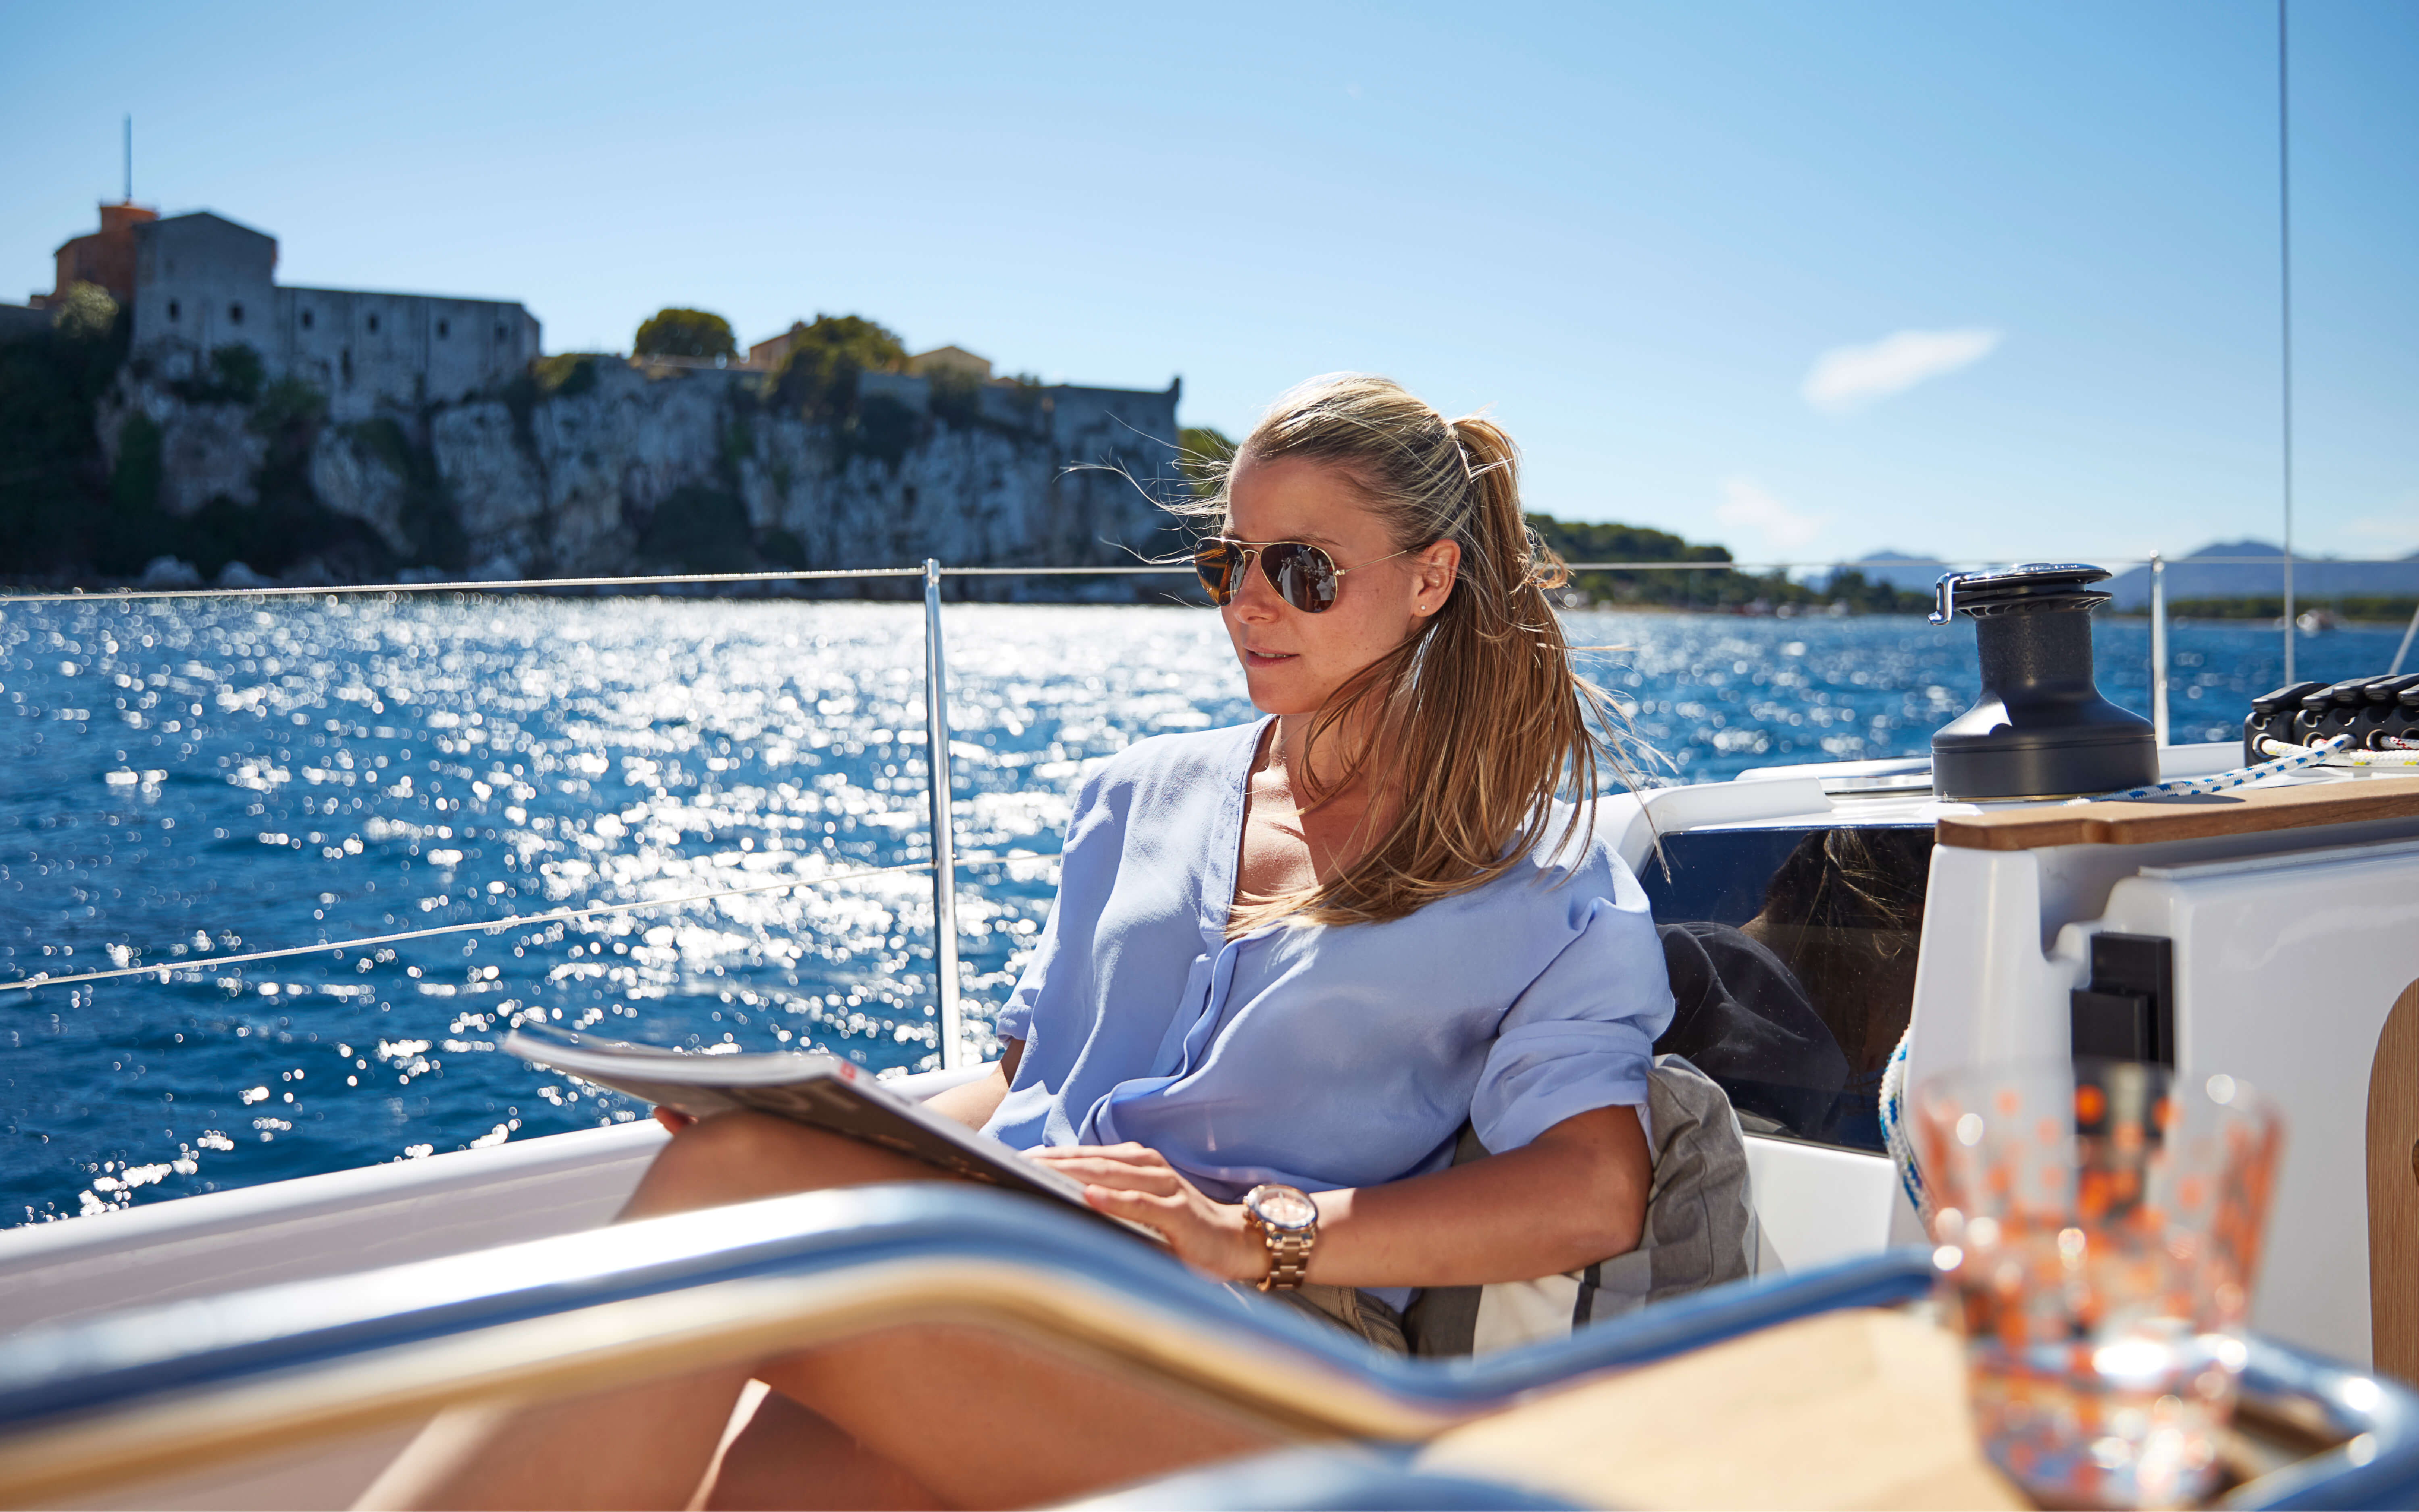 Hanse 315 Exterior at anchor | HANSE yachts amaze with their modern, functional design. Unique, puristic elegance meets exceptional performance from the pen of judel/vrolijk & co, the world's best and most experienced yacht designers. | Hanse